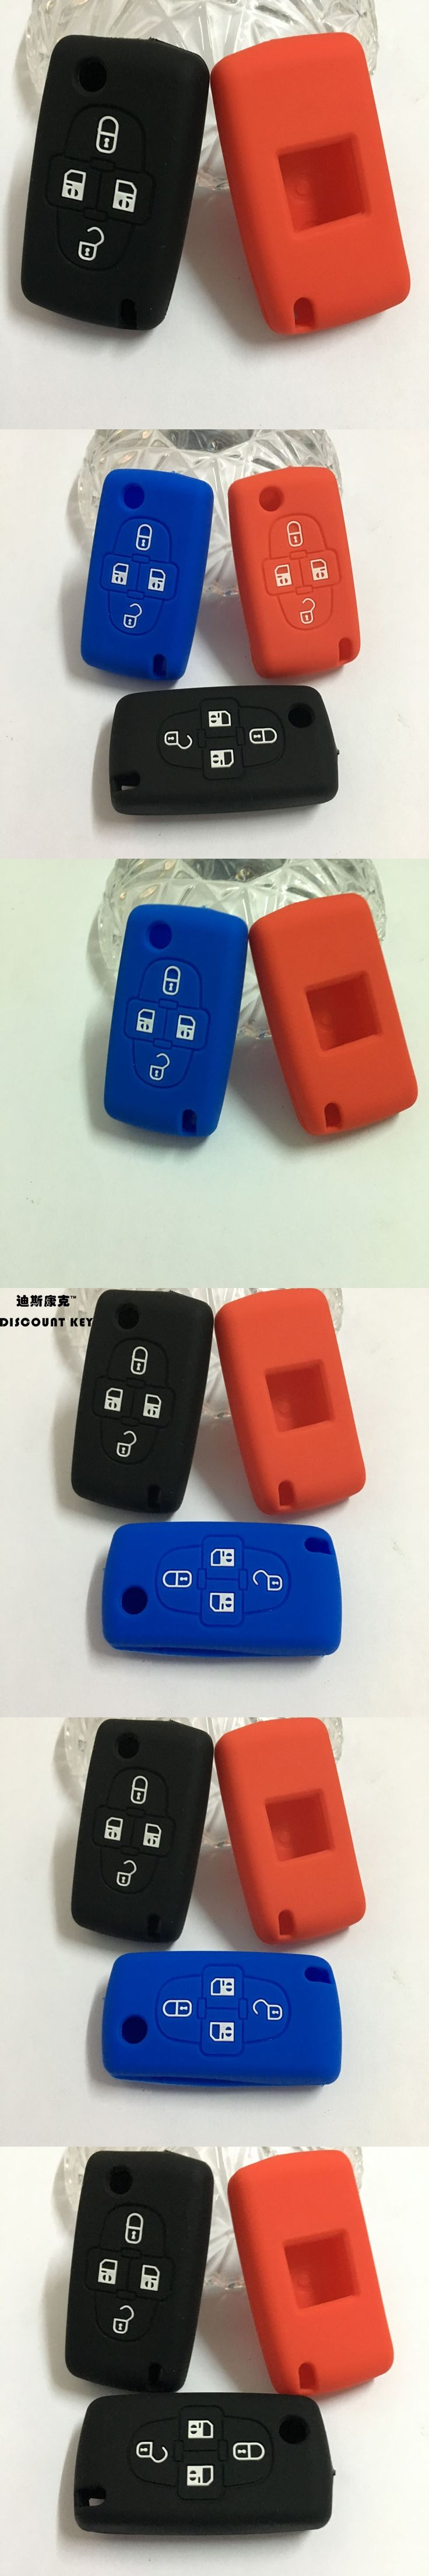 Silicone car key case cover for Peugeot 1007 Citroen C8 4 Buttons flip Remote Key Case car accessories